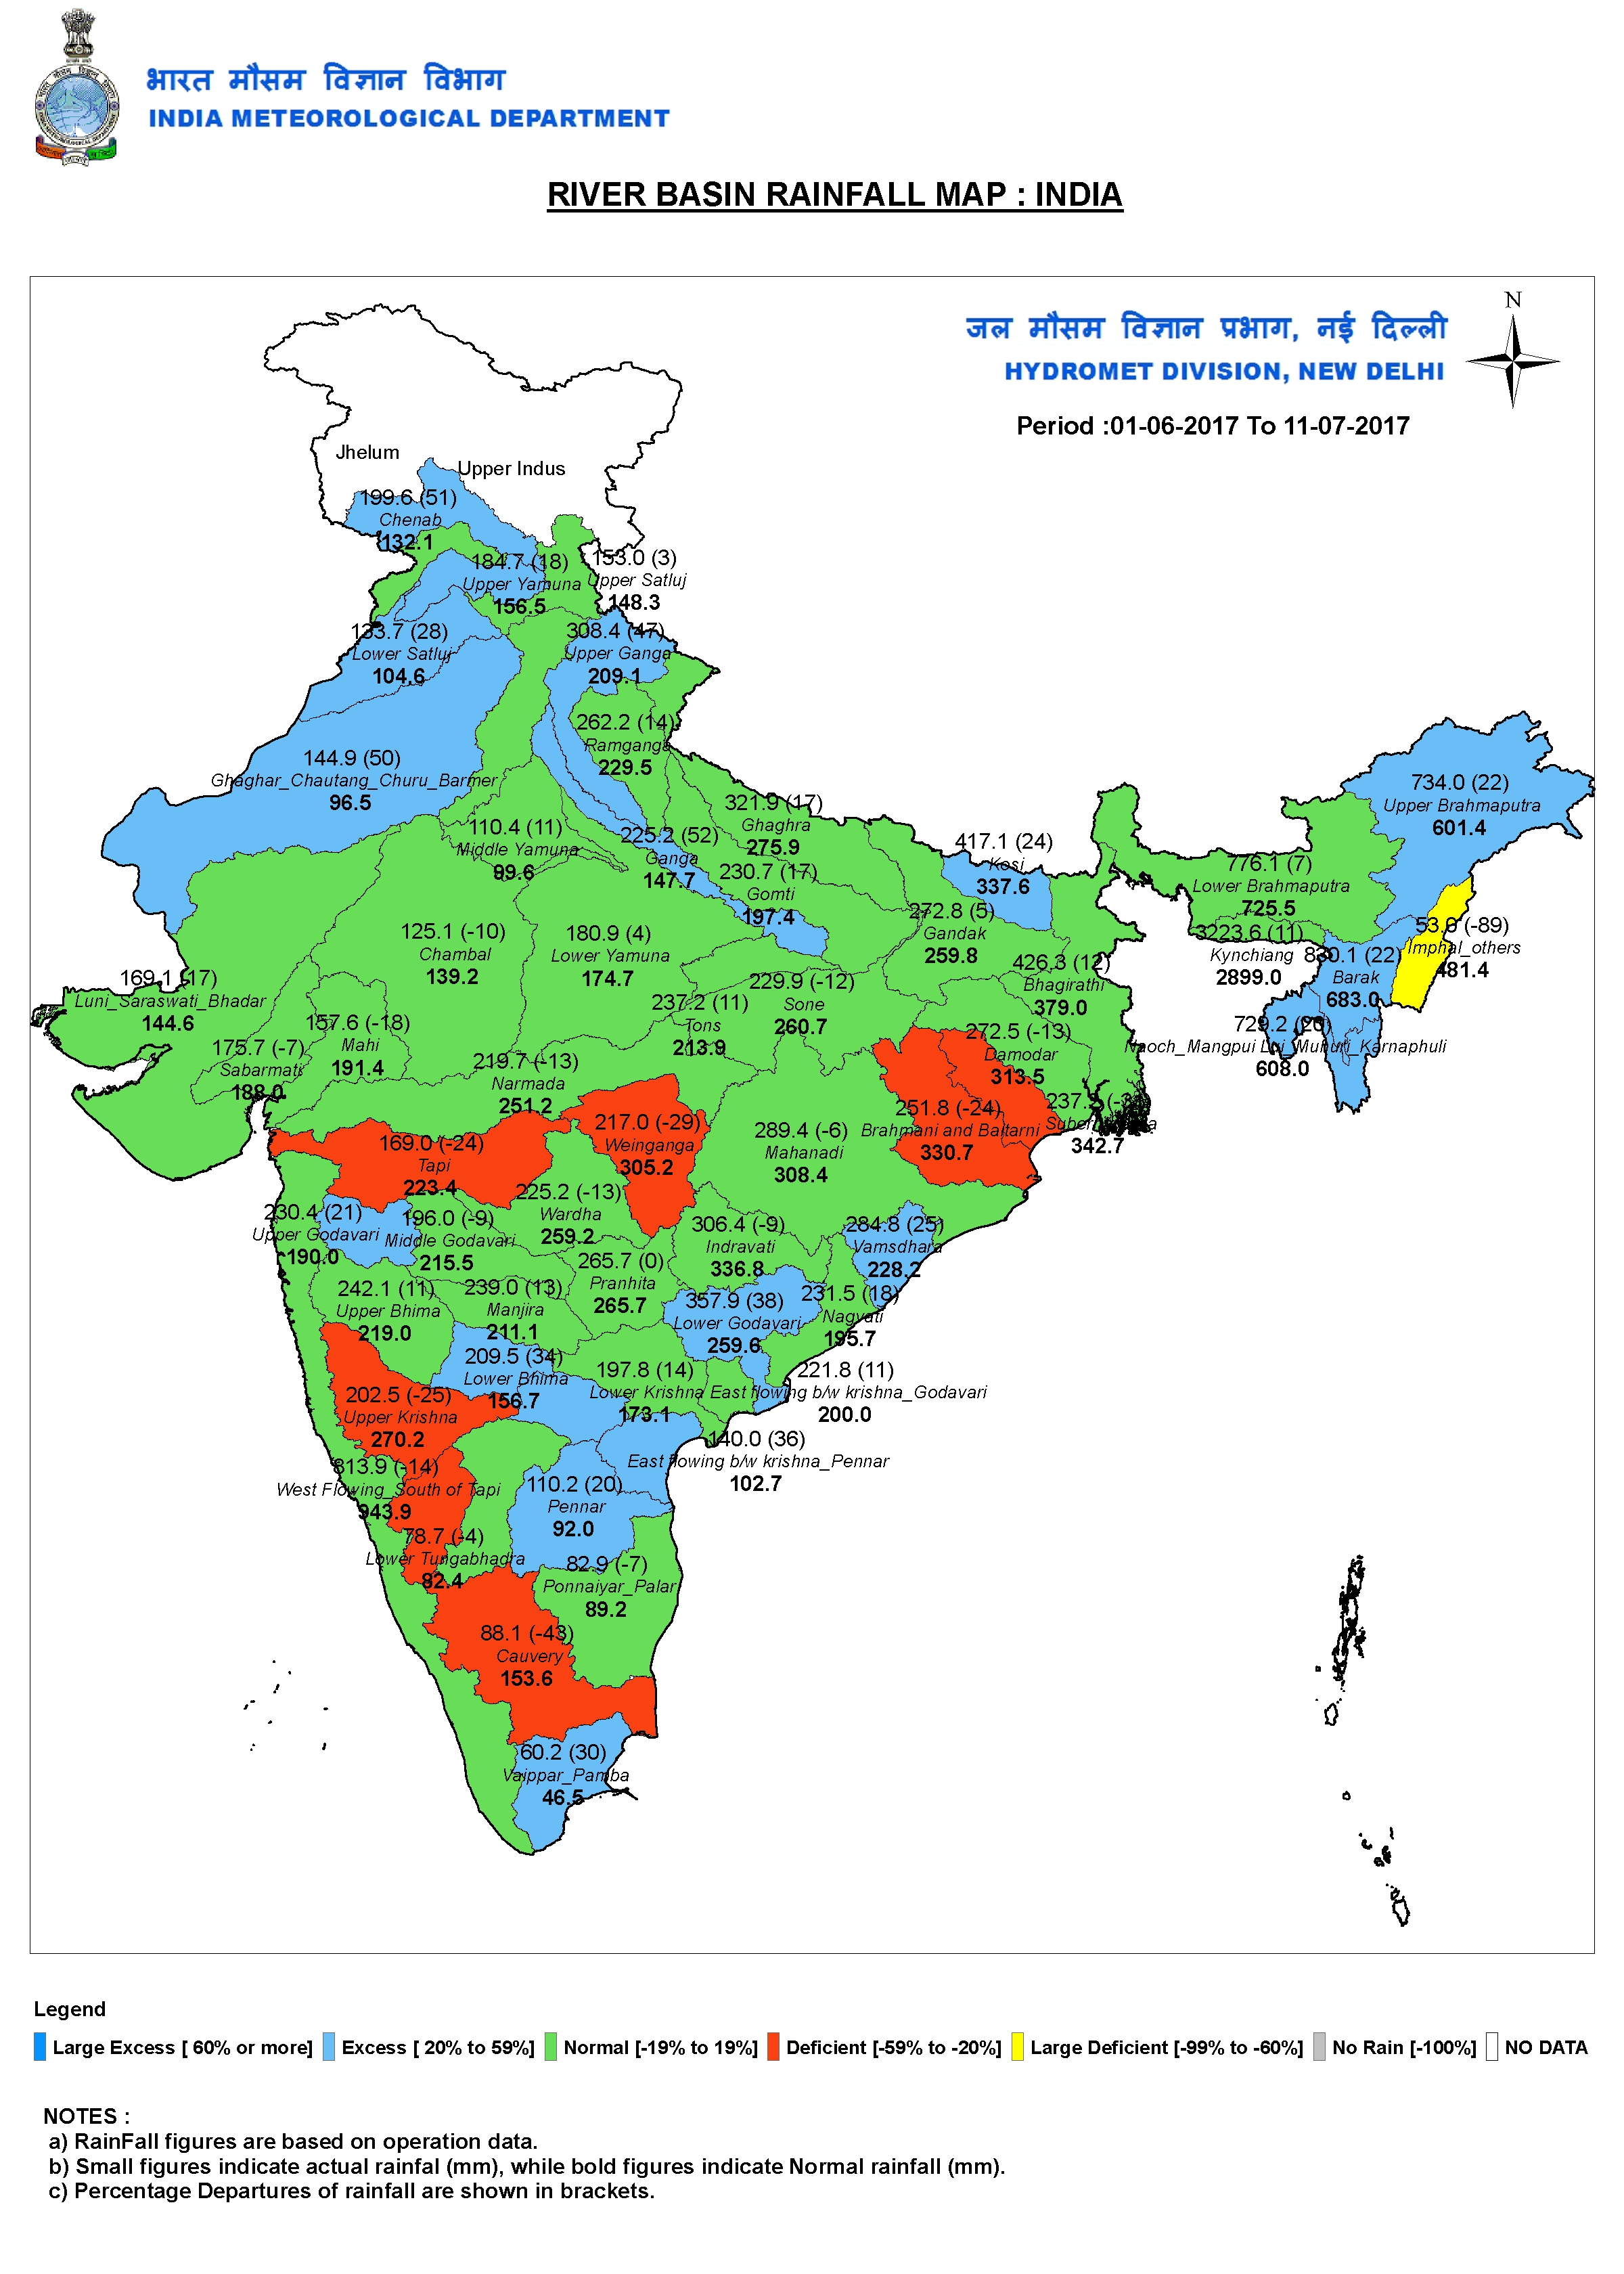 Credit: India Meteorological Department